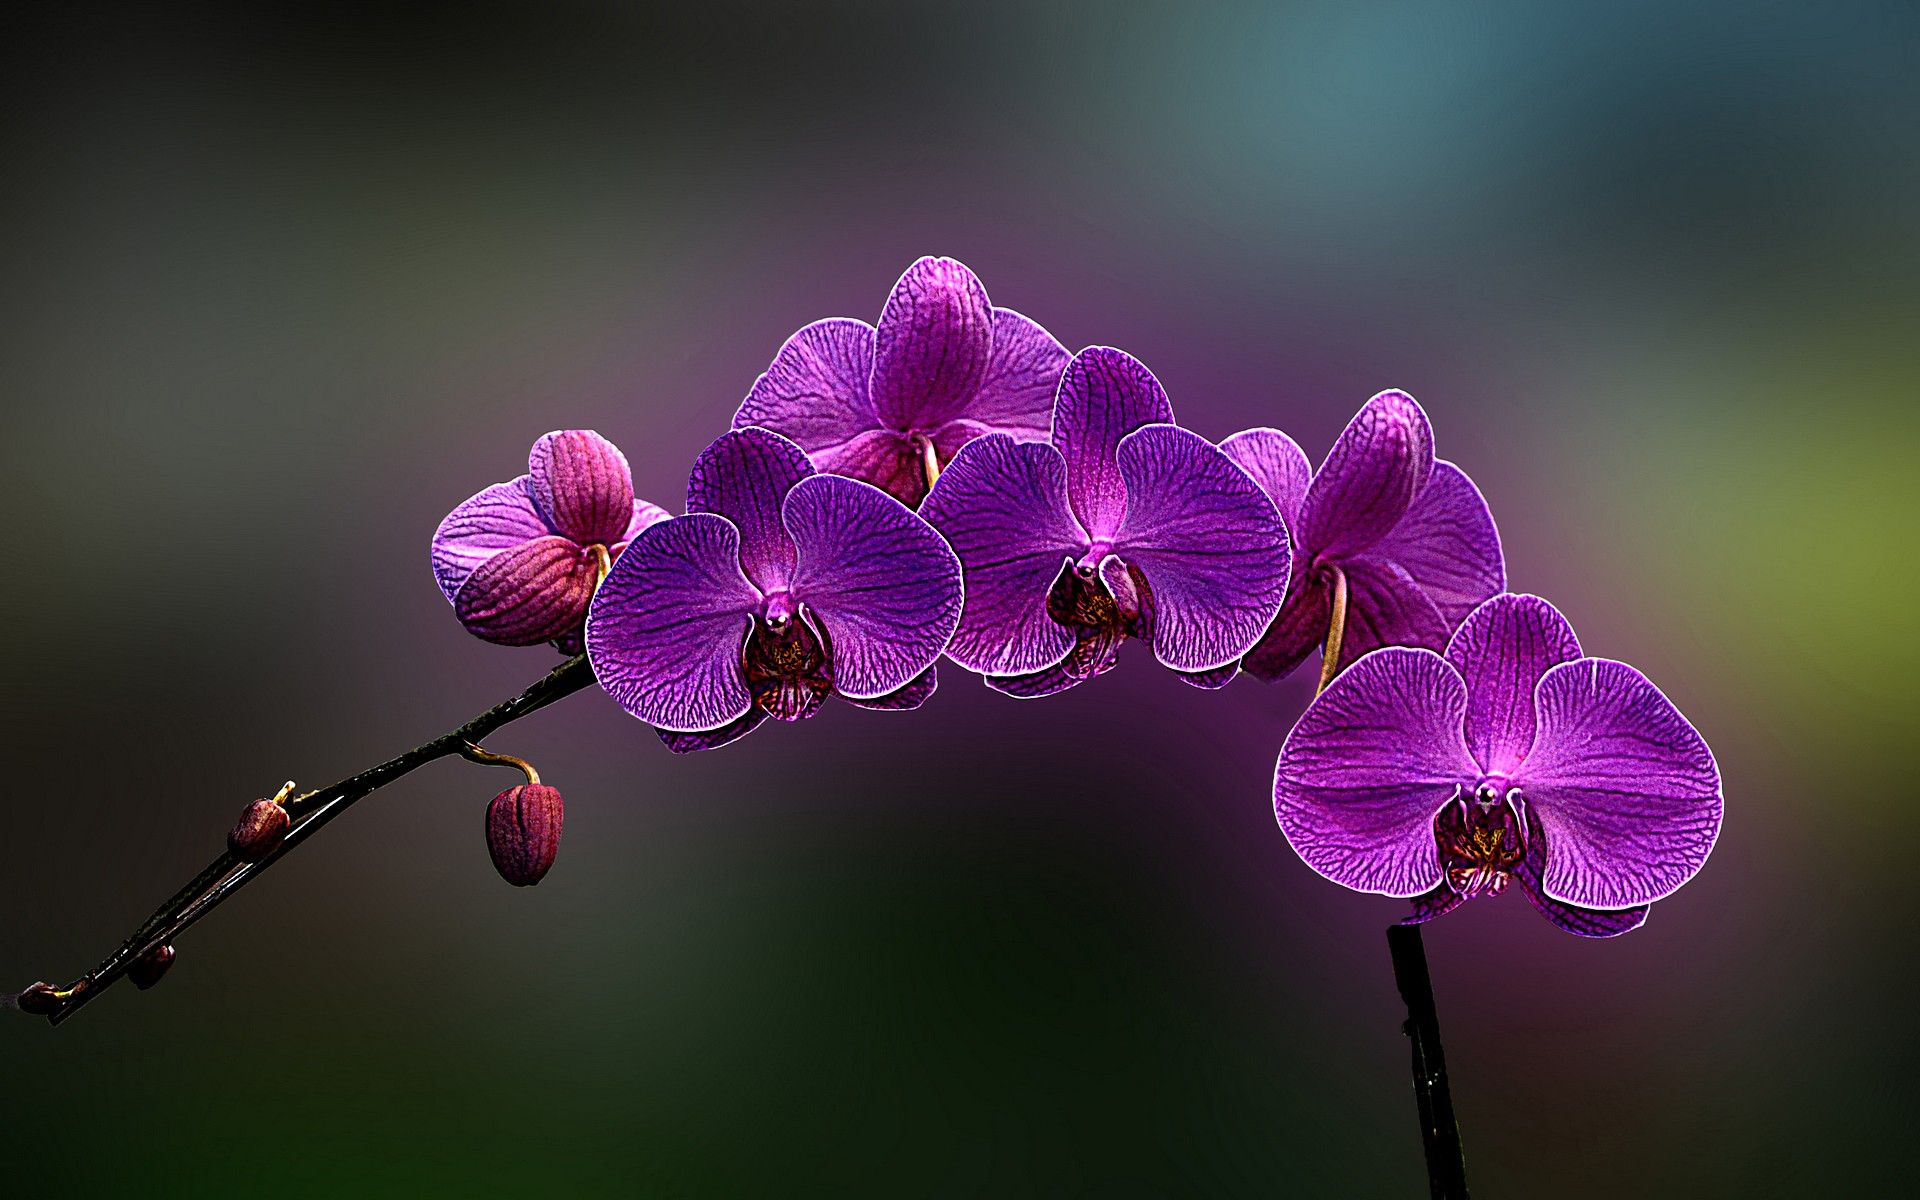 Flowers Orchids Wallpaper Orchid Wallpaper Types Of Purple Flowers Orchid Flower